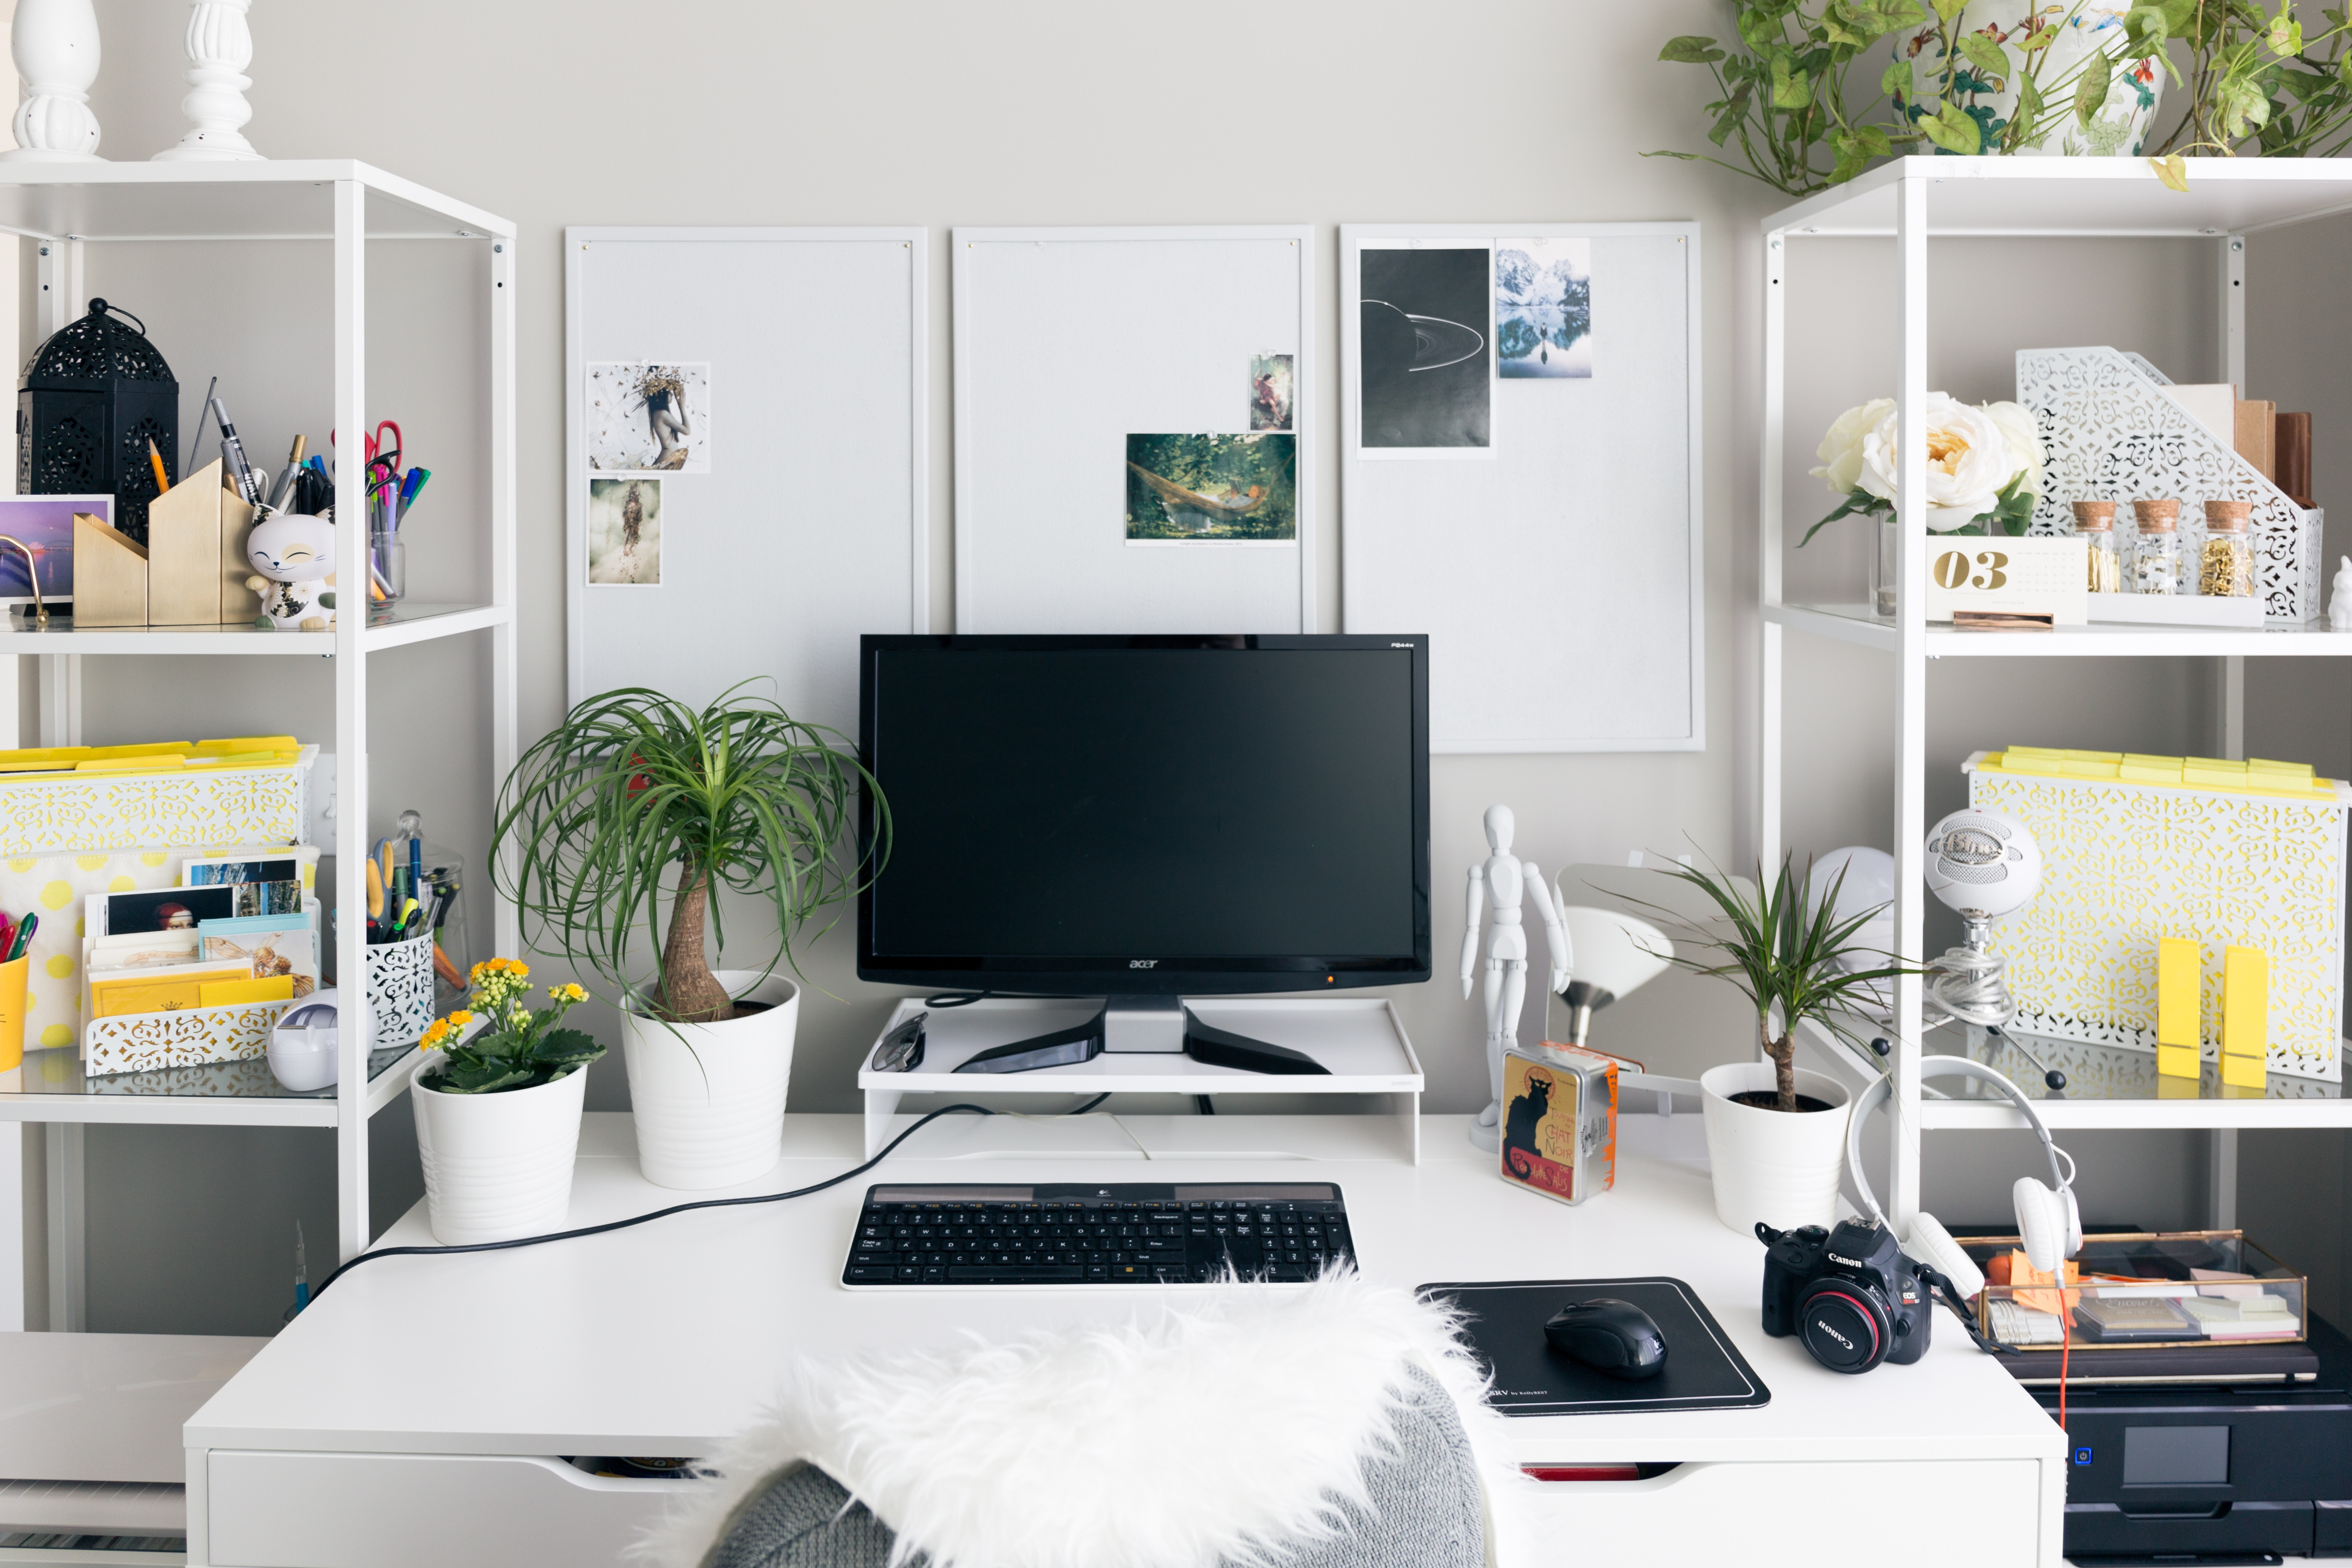 5 top tips for creating a productive workspace